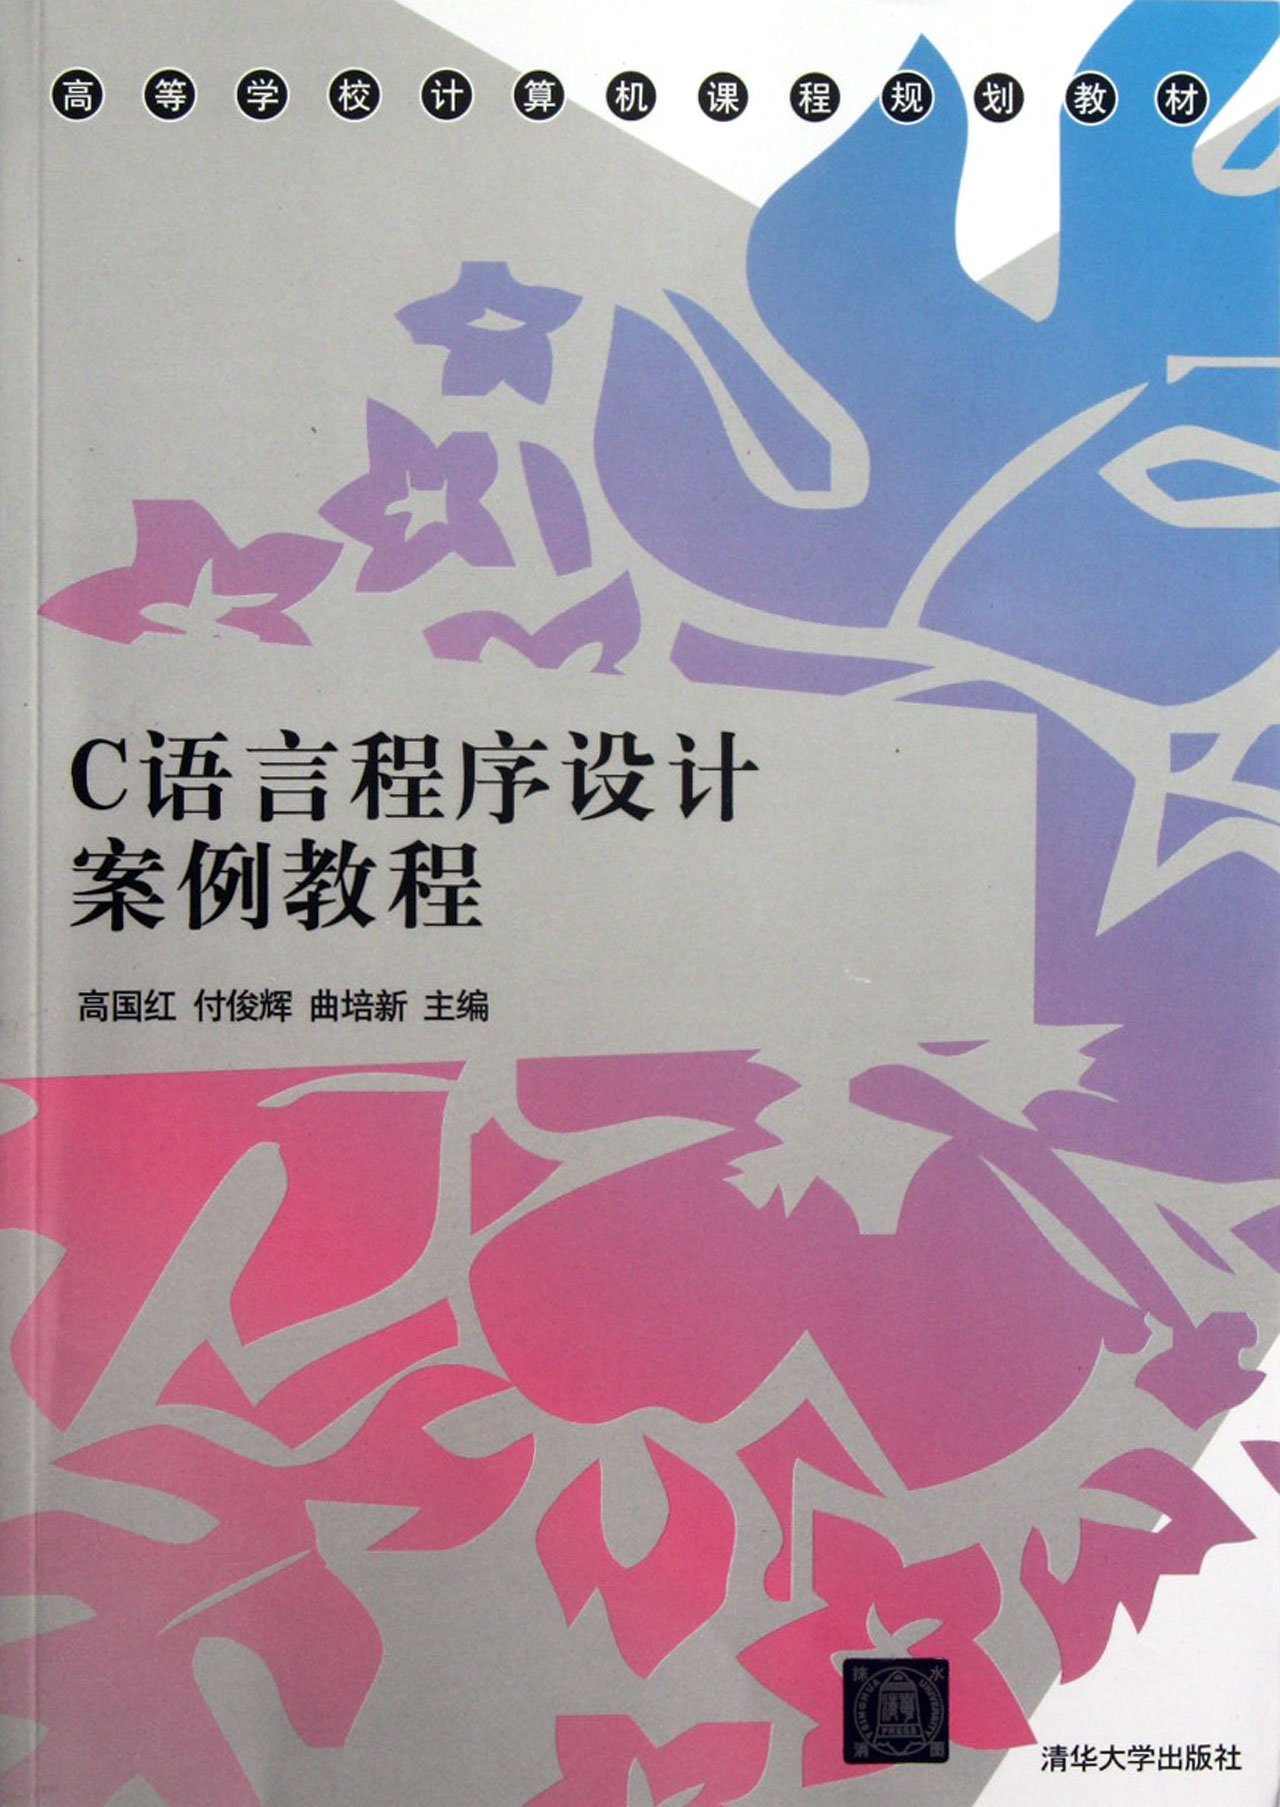 Read Online The Case Coursebook on C Language Programming(higher education computer course planning material) (Chinese Edition) pdf epub